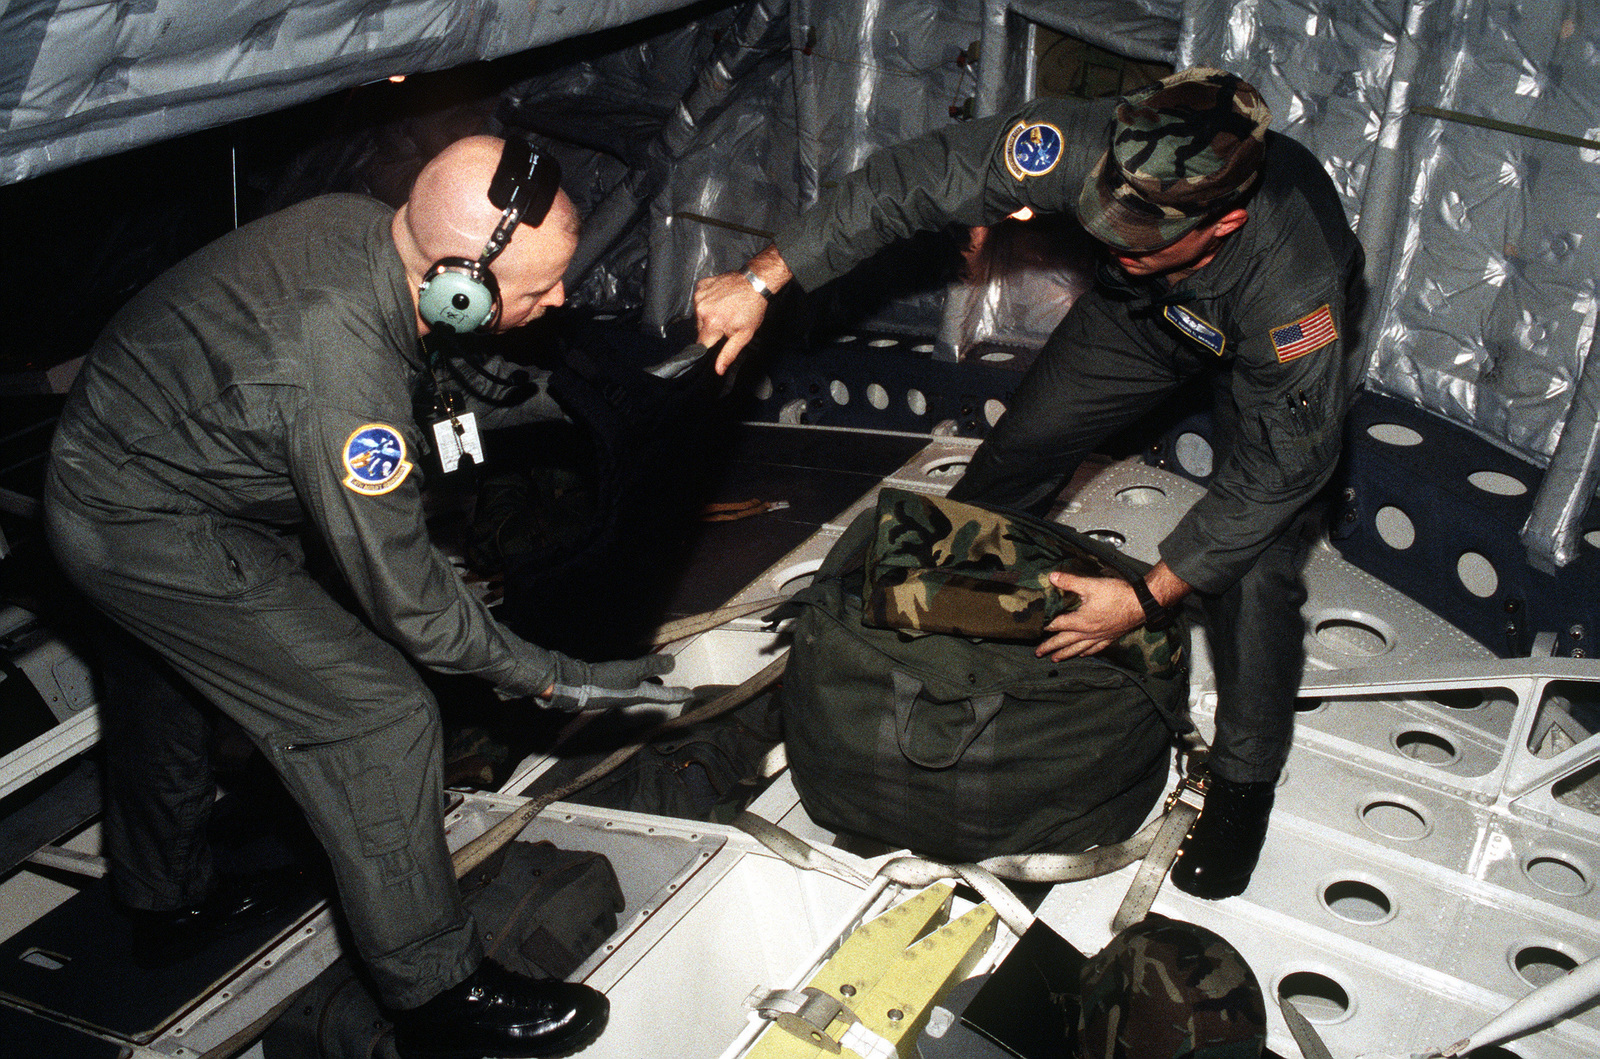 STAFF SGT. William E. Pace (right) and STAFF SGT. Brian D. McGriff, loadmasters with the 14th Airlift Squadron (AS), pull flak jackets and associated equipment from holds in the rear of the C-17 Globemaster III. Once in Bosnian airspace, all crewmembers are required to don a protective flak vest and helmet. The 14th AS's C-17s assigned to the 437th Airlift Wing, Charleston Air Force Base, S.C. are providing inter-theater transport capability to the former Yugoslavia region in support the United Nation's Implementation Force